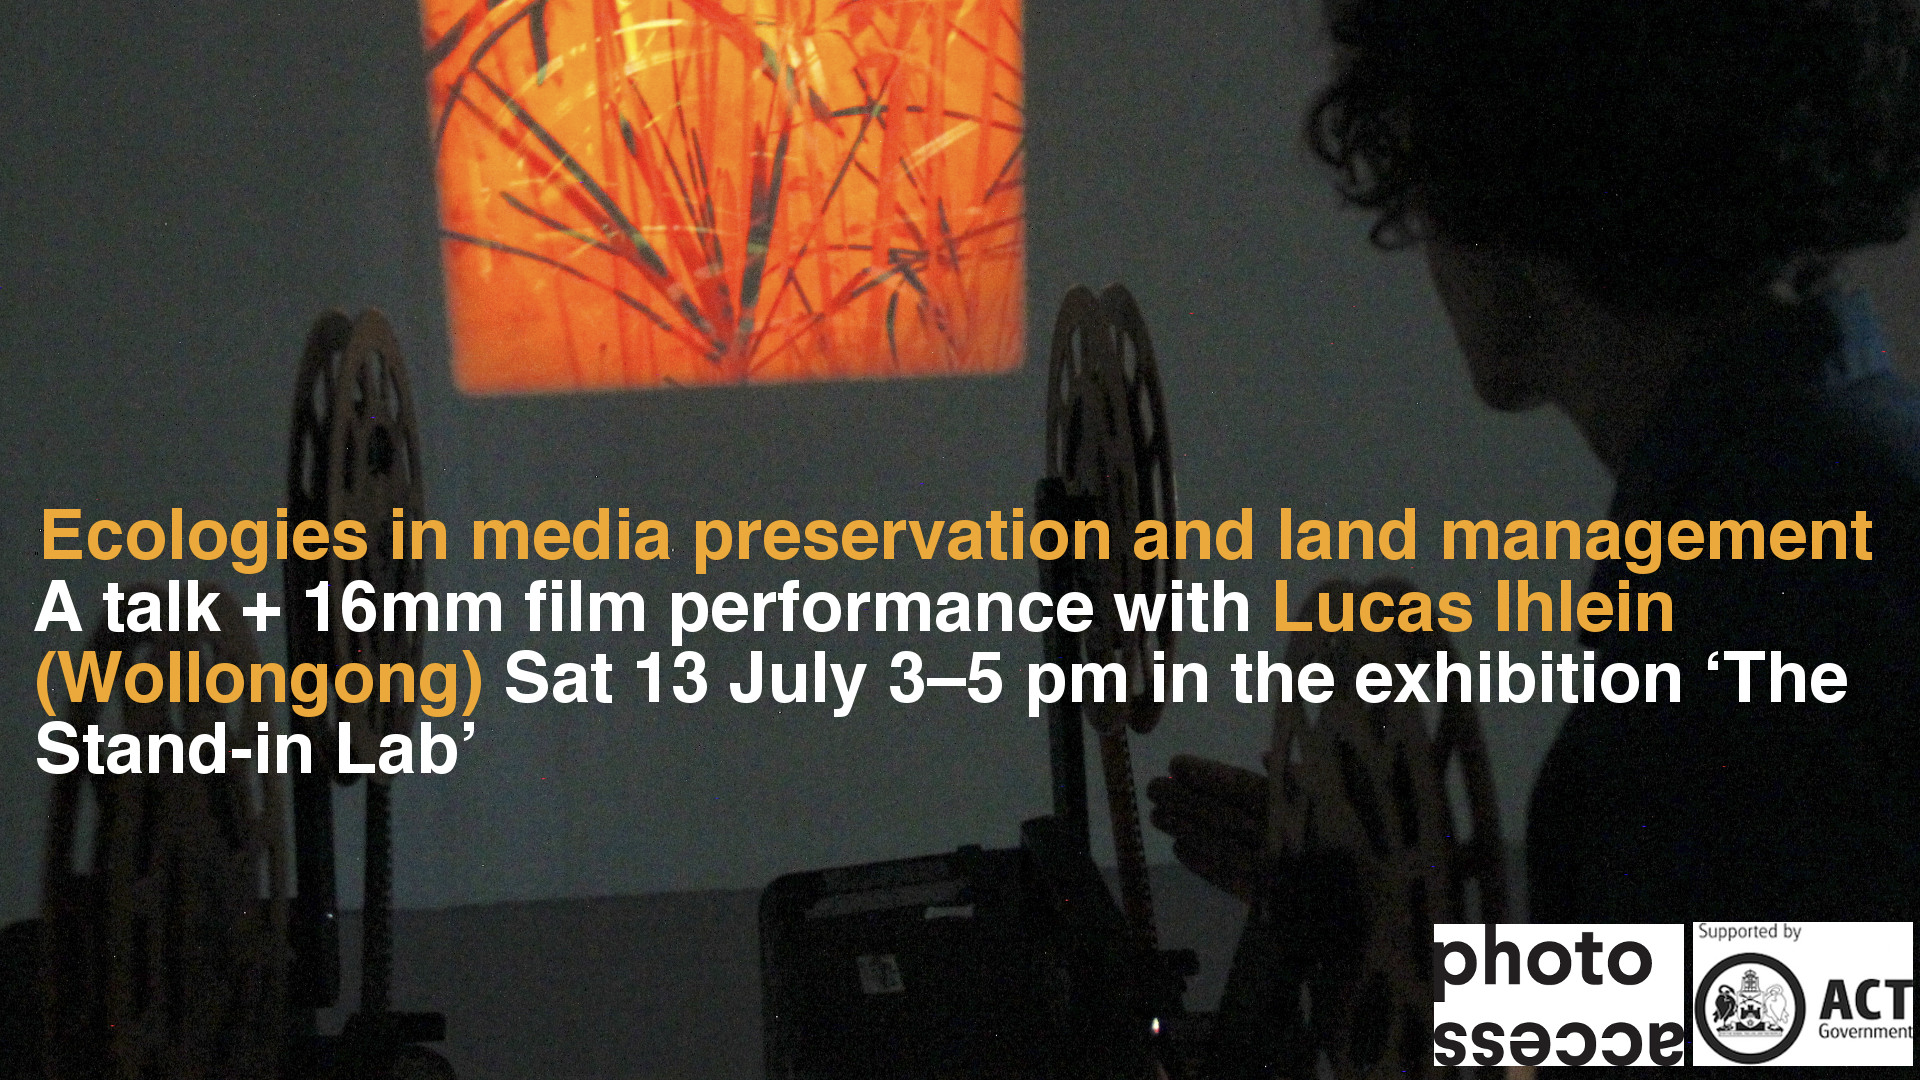 [Spotlight] The Stand-in Lab - Experimental Live This Sat 13 July - Free Event